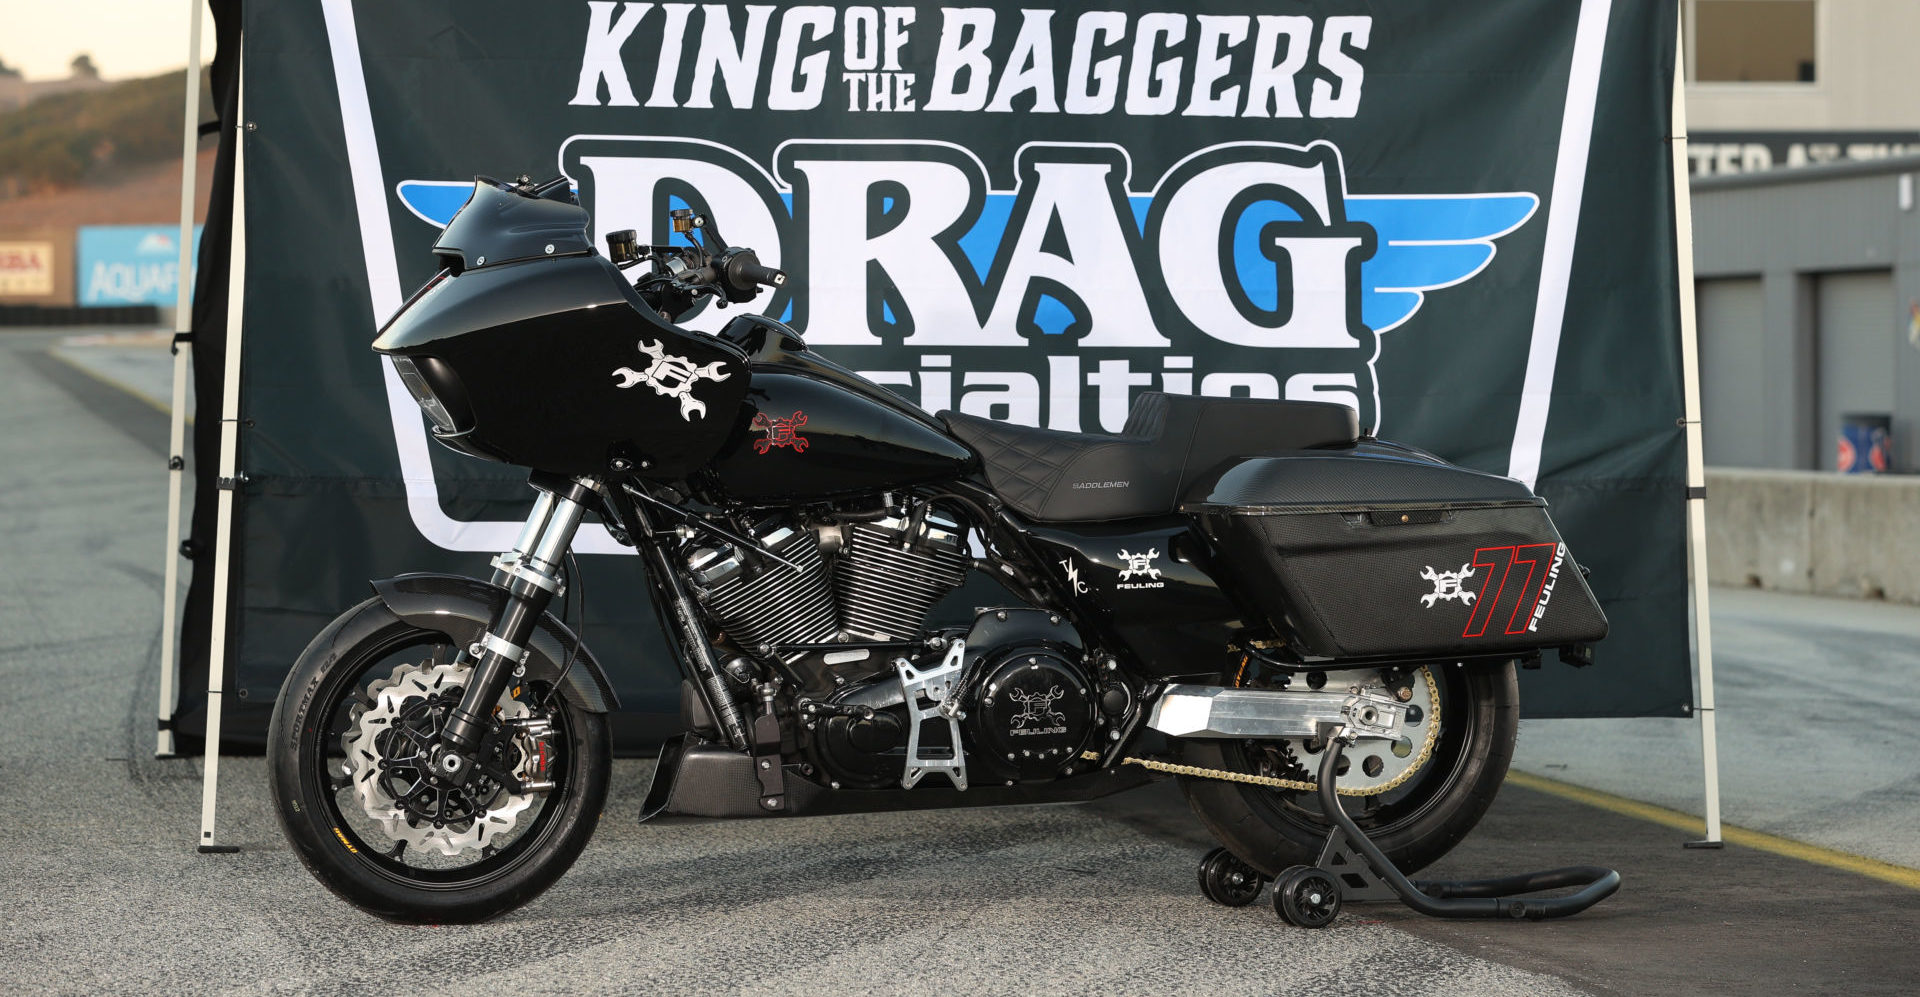 Ben Bostrom's Feuling Parts Harley-Davidson Road Glide King of the Baggers racebike. Photo by Brian J. Nelson.